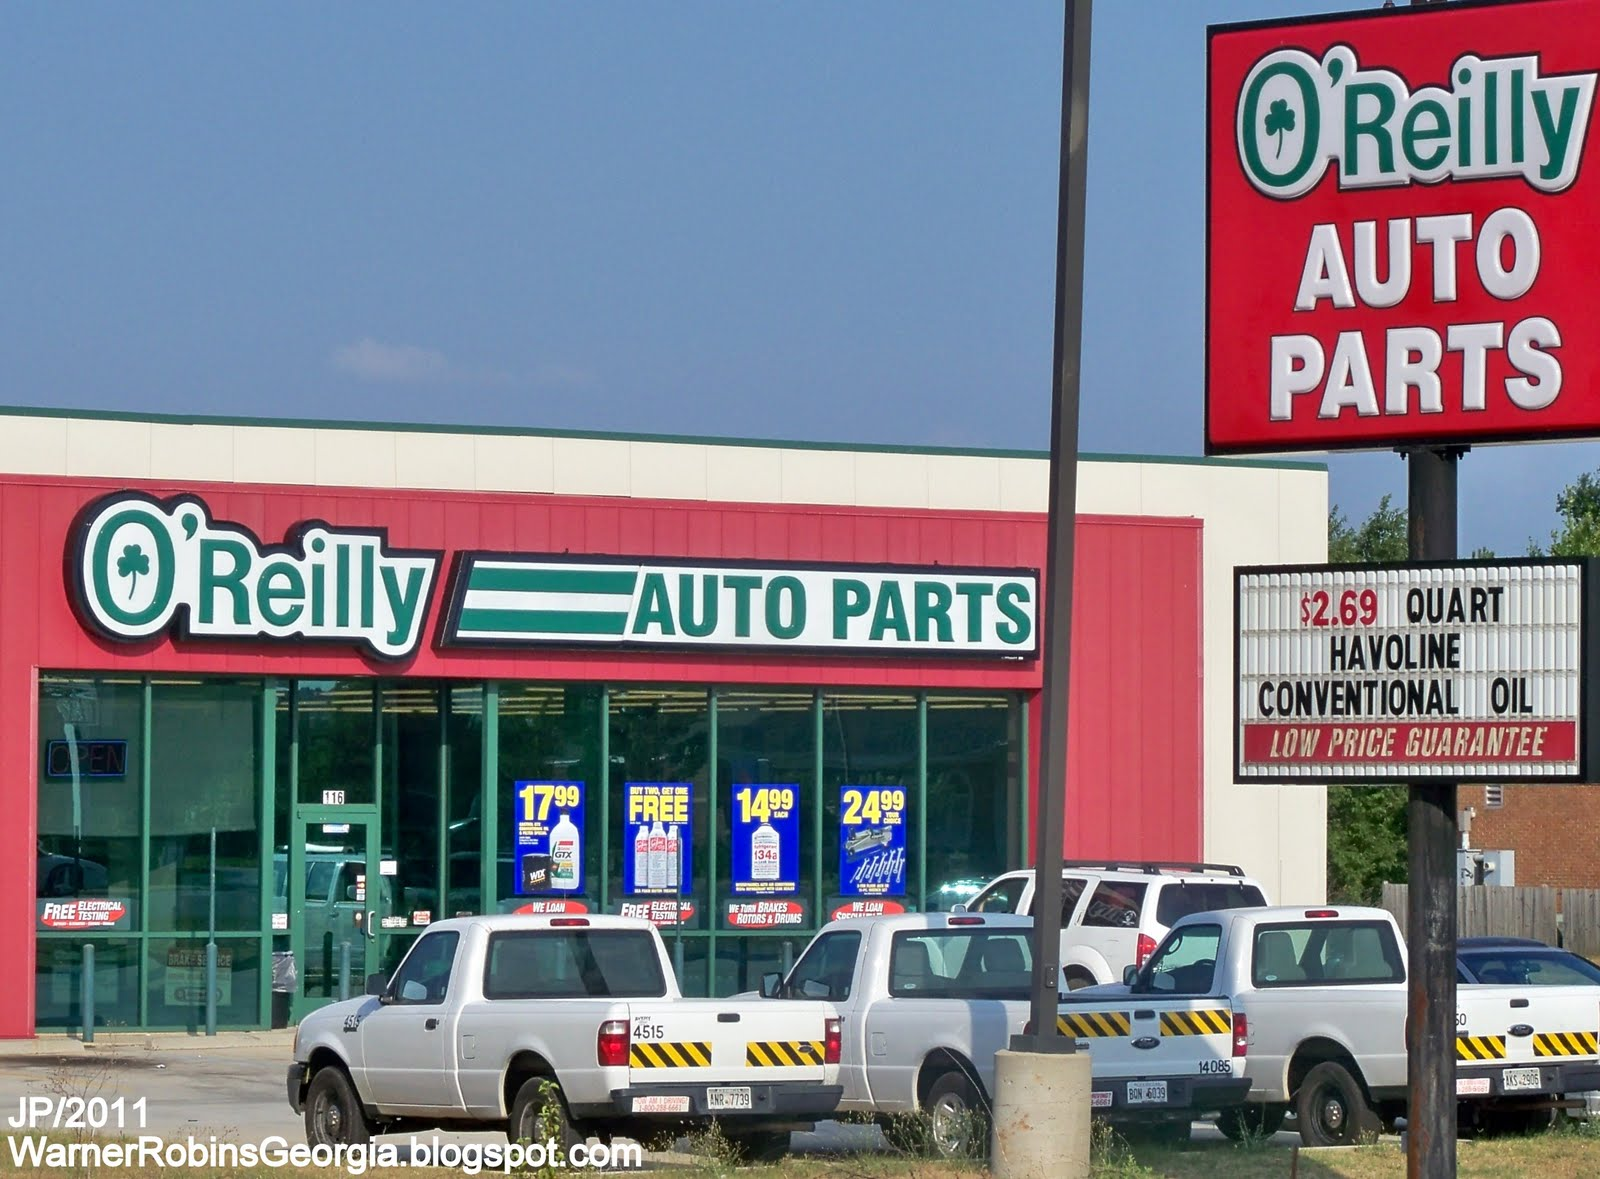 It's getting harder to save on oil changes, but if you like to do it the old fashioned way, you can get everything you need for $ after rebate at O'Reilly Auto Parts right now.